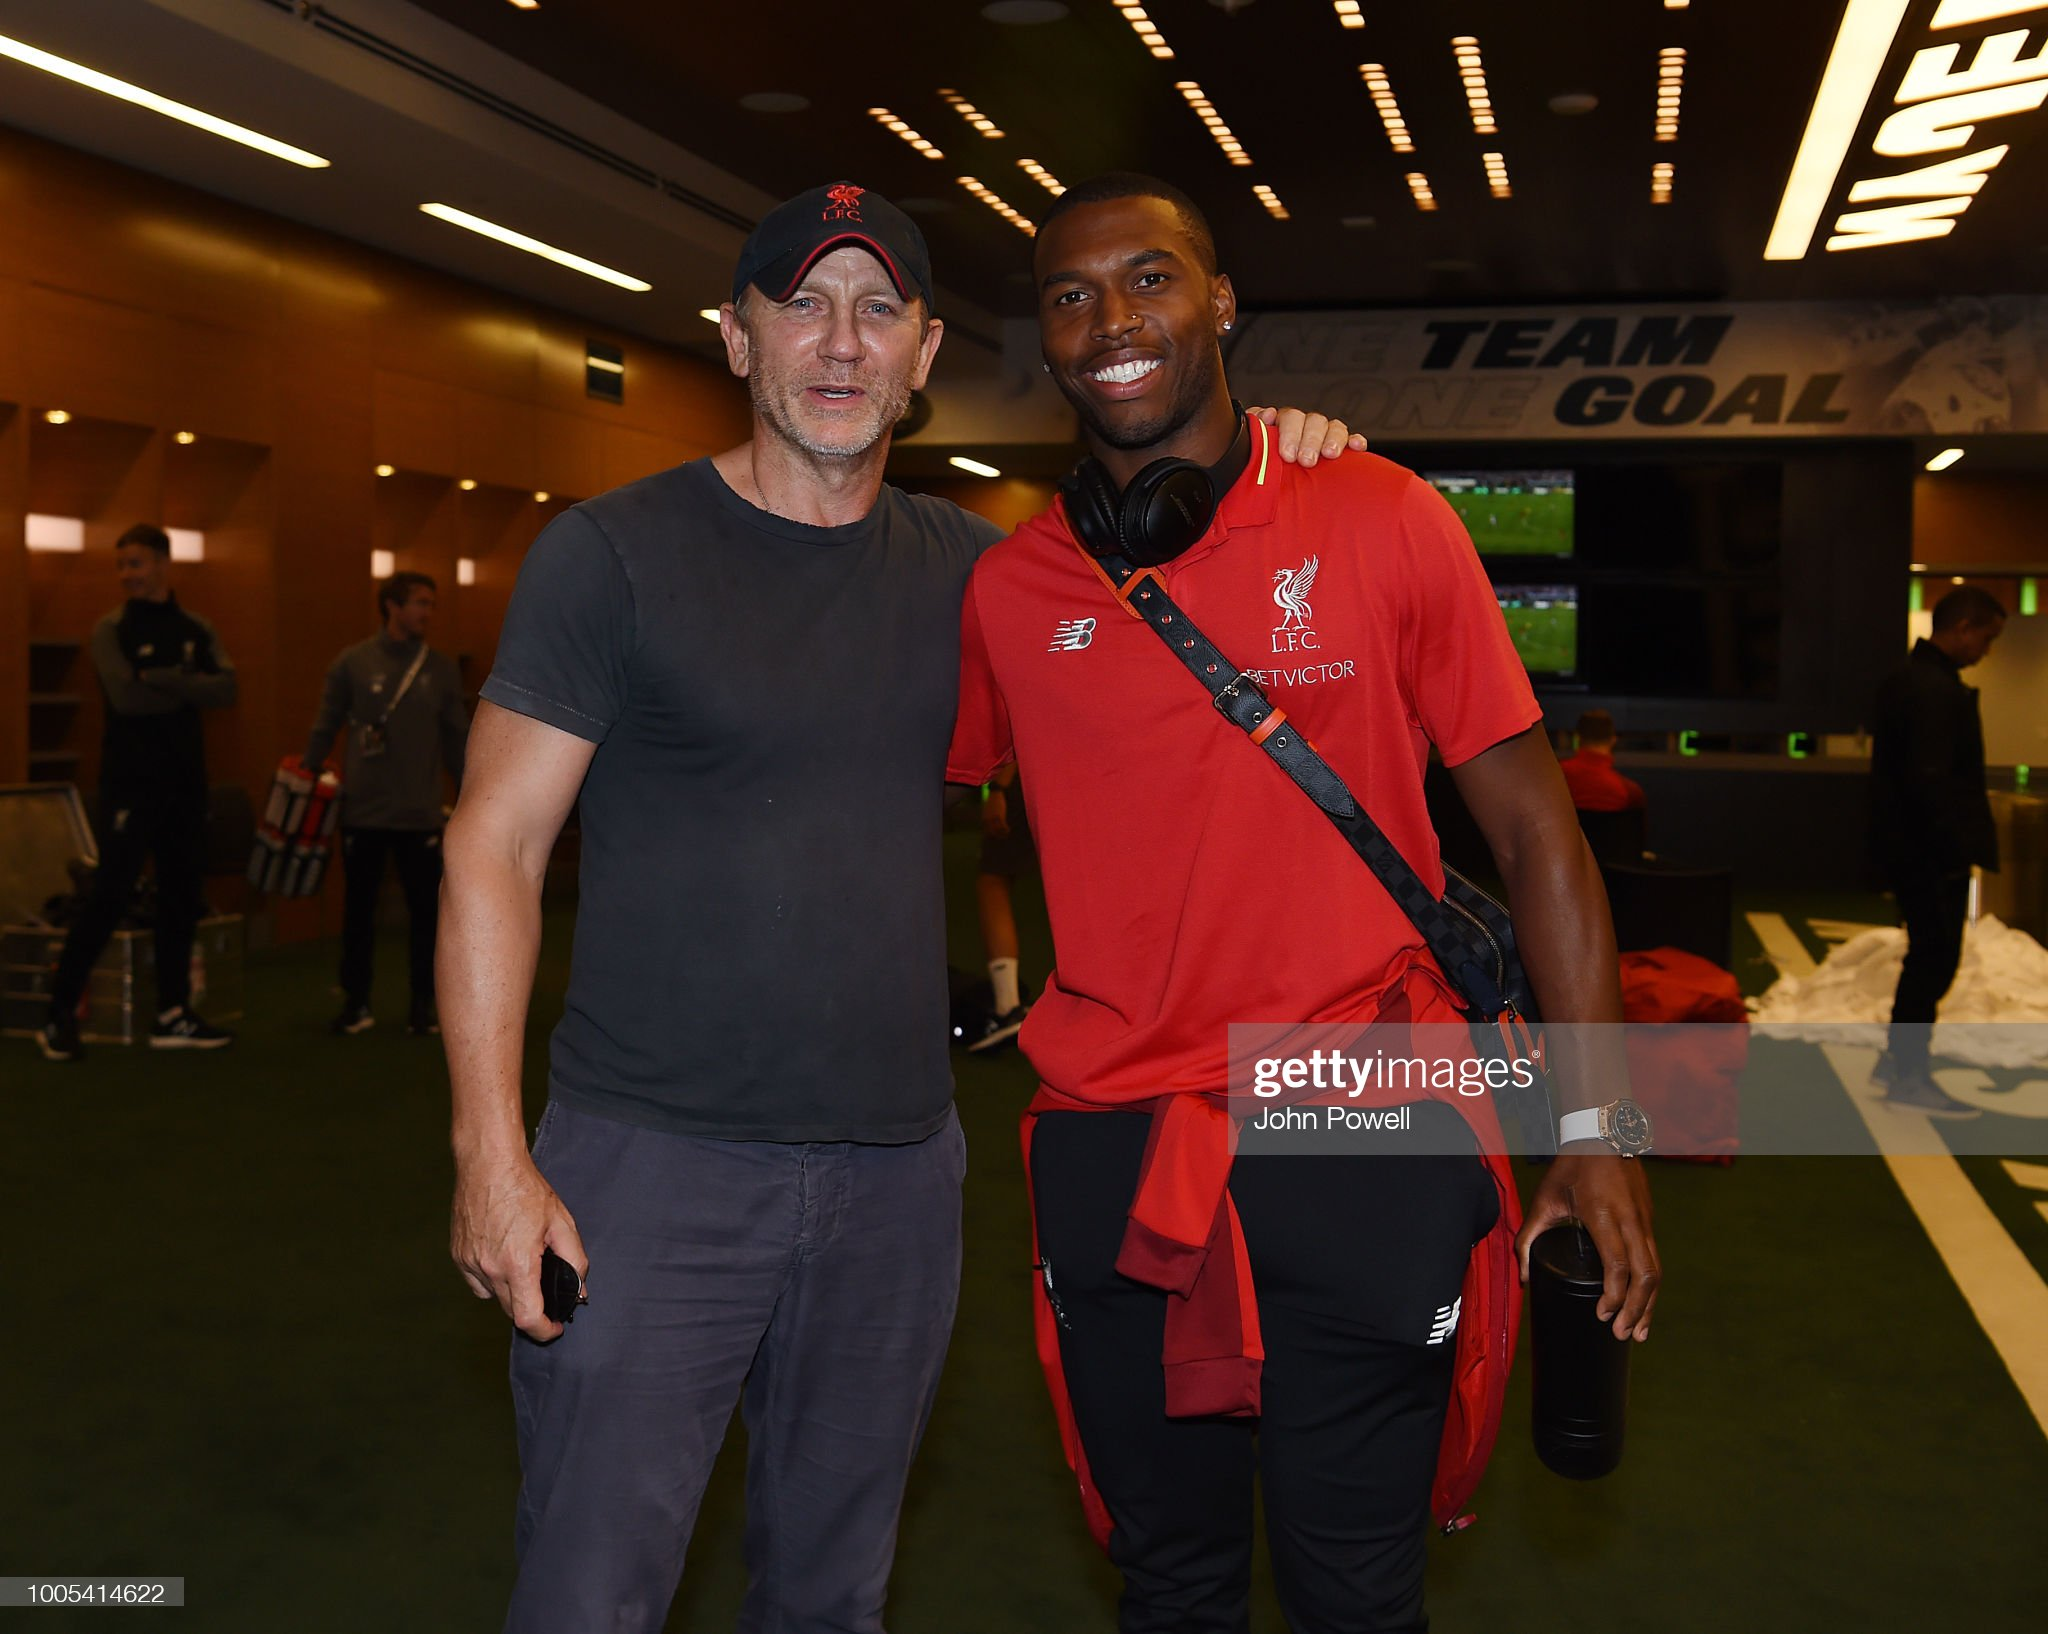 ¿Cuánto mide Daniel Sturridge? - Real height Daniel-craig-the-actor-who-plays-james-bond-posing-for-a-photograph-picture-id1005414622?s=2048x2048